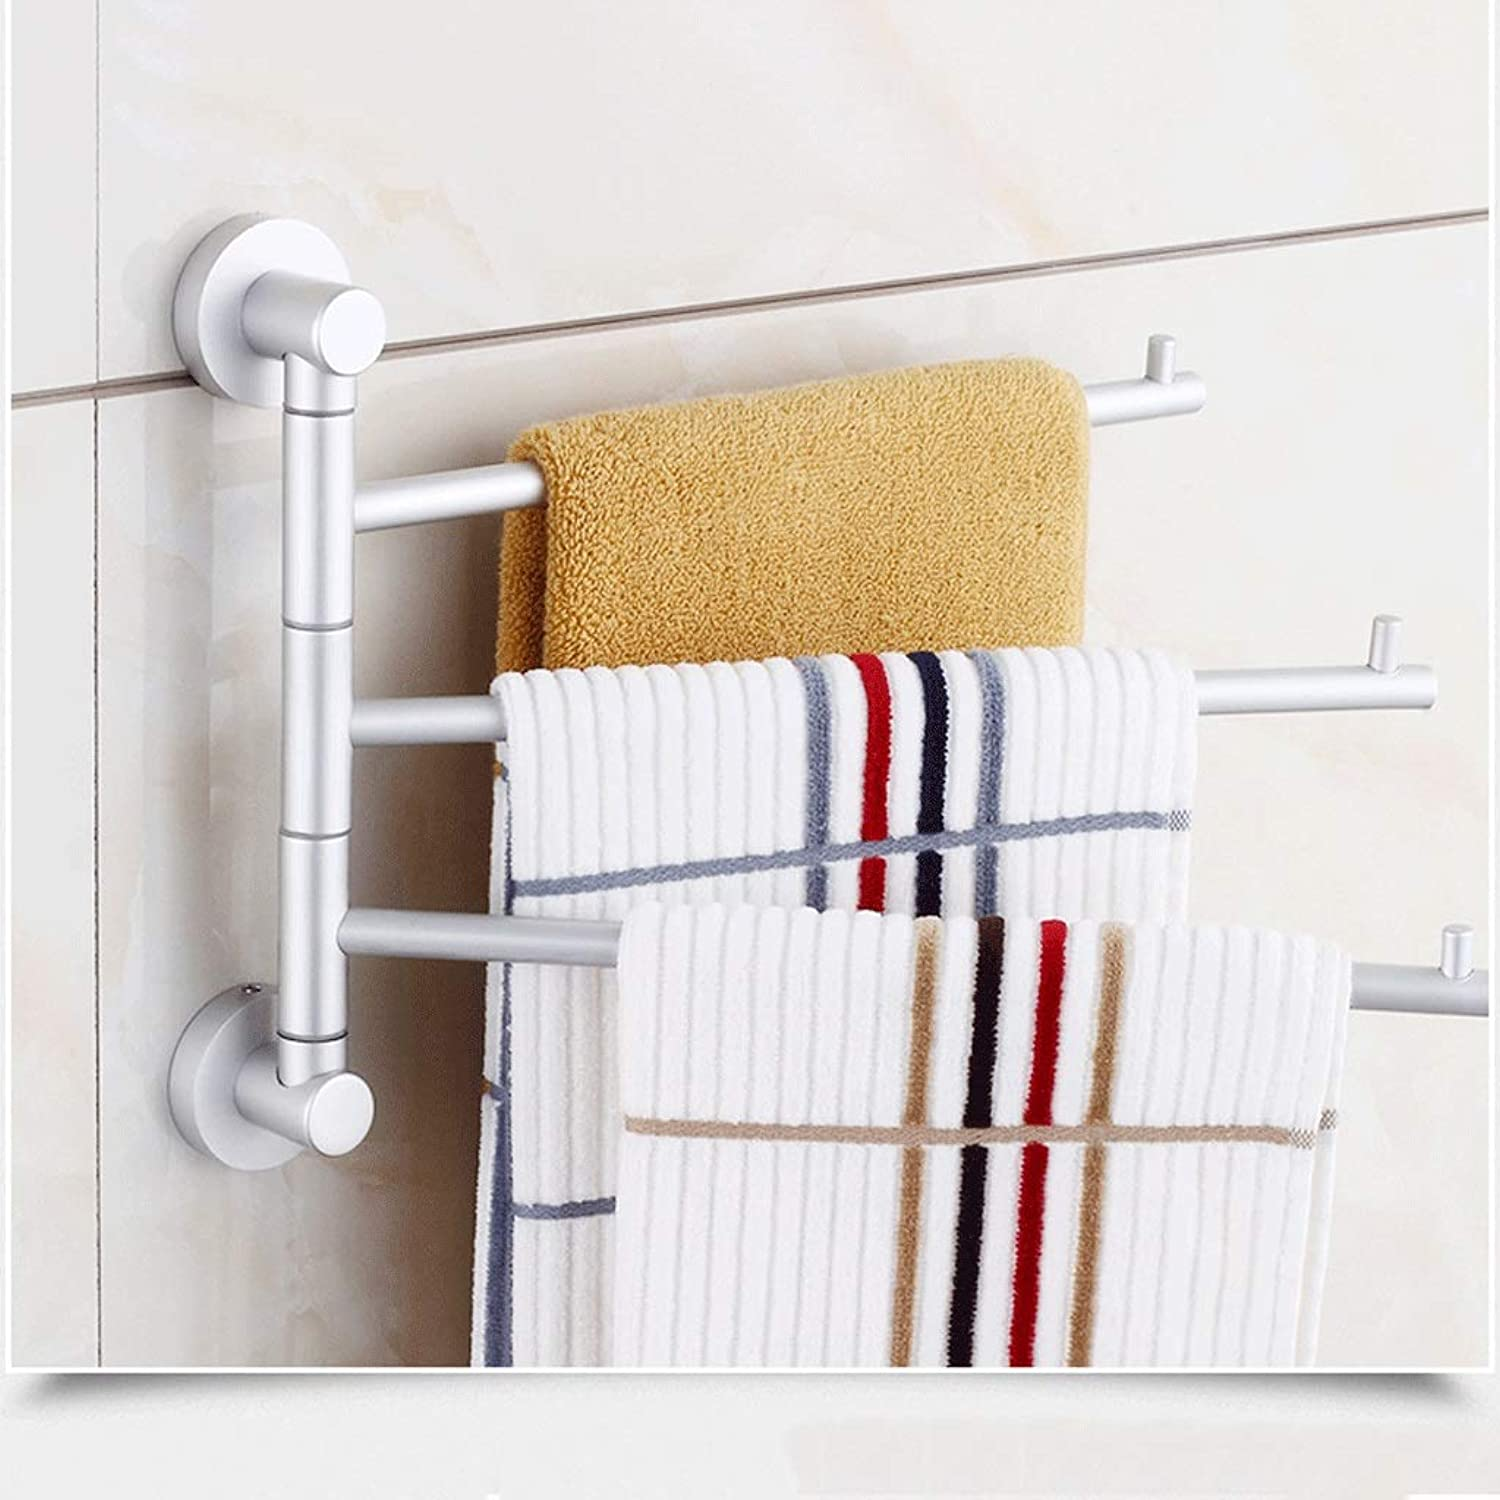 Bathroom Self-Adhesive Towel Rack Space Aluminum Alloy Multi-Function Thickening redating Towel Bar Hang Shelf (color   Deluxe Version 4 Poles)